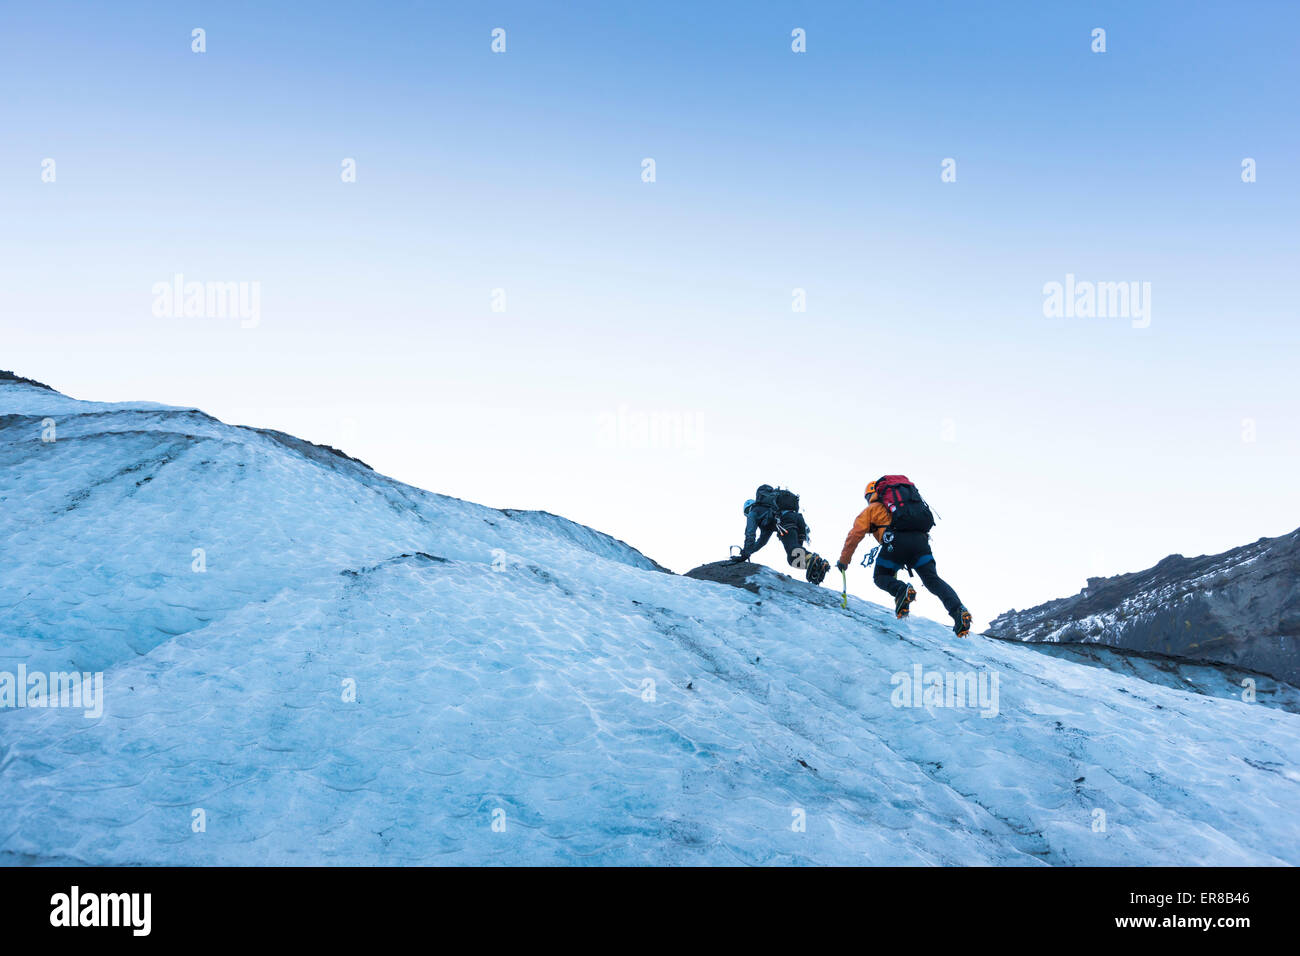 Two climbers on an Icelandic glacier. - Stock Image